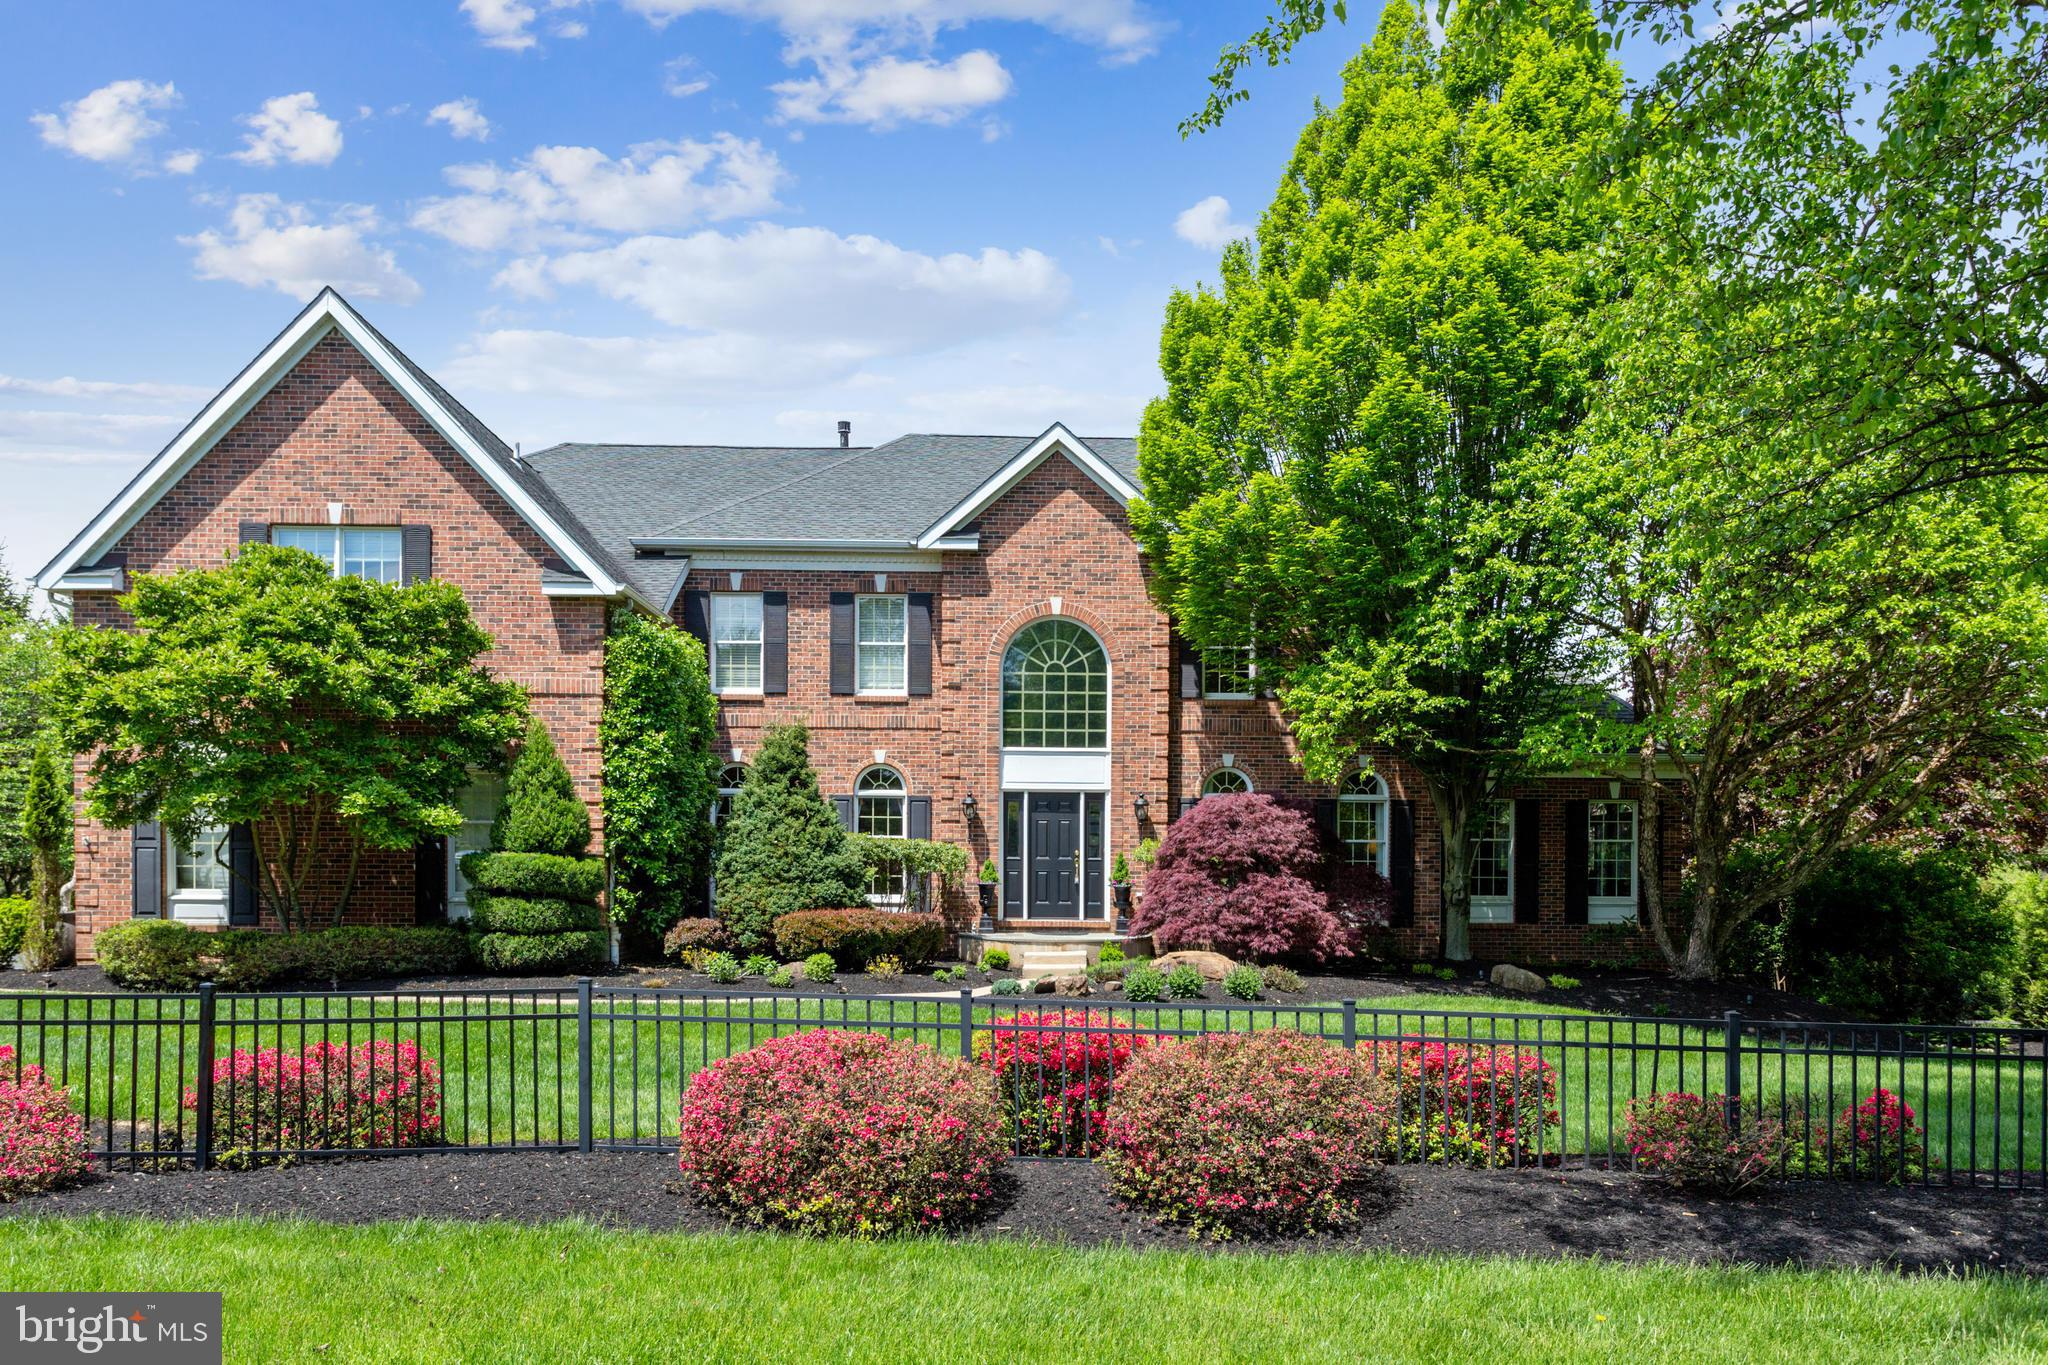 Welcome to 2055 White Horse Road, part of the popular Berwyn Estates community, a brick-front traditional colonial with great curb appeal. Berwyn Estates is in the top-rated Tredyffrin Easttown School District and is within walking distance to the new Episcopal Academy. This light, bright home is configured with the primary bedroom with tray ceiling, sitting room, and en suite bathroom with double vanities, jacuzzi tub and large shower as well as the not-to-be-missed walk-in closet with custom organizer. The guest room with en suite bathroom, plus, two more bedrooms served by a jack & jill bathroom all on the upper level with front and back stairs for access. The main level is complete with a gracious living room and dining room and the sports enthusiast's step-down conservatory with vaulted ceiling. There is also a dedicated office with French doors, the beautiful kitchen with white cabinets, black granite countertops, stainless steel appliances, gas cooking, and the corner window feature behind the sink. The breakfast area leads to the spectacular 2-story family room with floor to ceiling stone fireplace and a wall of windows. The first floor is completed by the laundry room, a powder room, and of course the oversize 3-car garage. The daylight, walkout lower level has the 5th bedroom and 4th full bathroom along with a kitchenette adjacent to the TV/rec room area, followed by a sound-proof media room and exercise room. All of this leading out back to the spectacular outdoor patio living space surrounding the pool and koi pond. As you tour this home, don't miss the numerous upgrades including paver front walkway, Brazilian Cherry hardwood floors through a large part of the main level, crown moldings, bay window in the dining room, large deck overlooking the stamped concrete patio & pool lounging area, as well as three separate HVAC systems. All of this and just minutes to Paoli restaurants, shops, and the train station for the R5 to Philadelphia as well as a short d